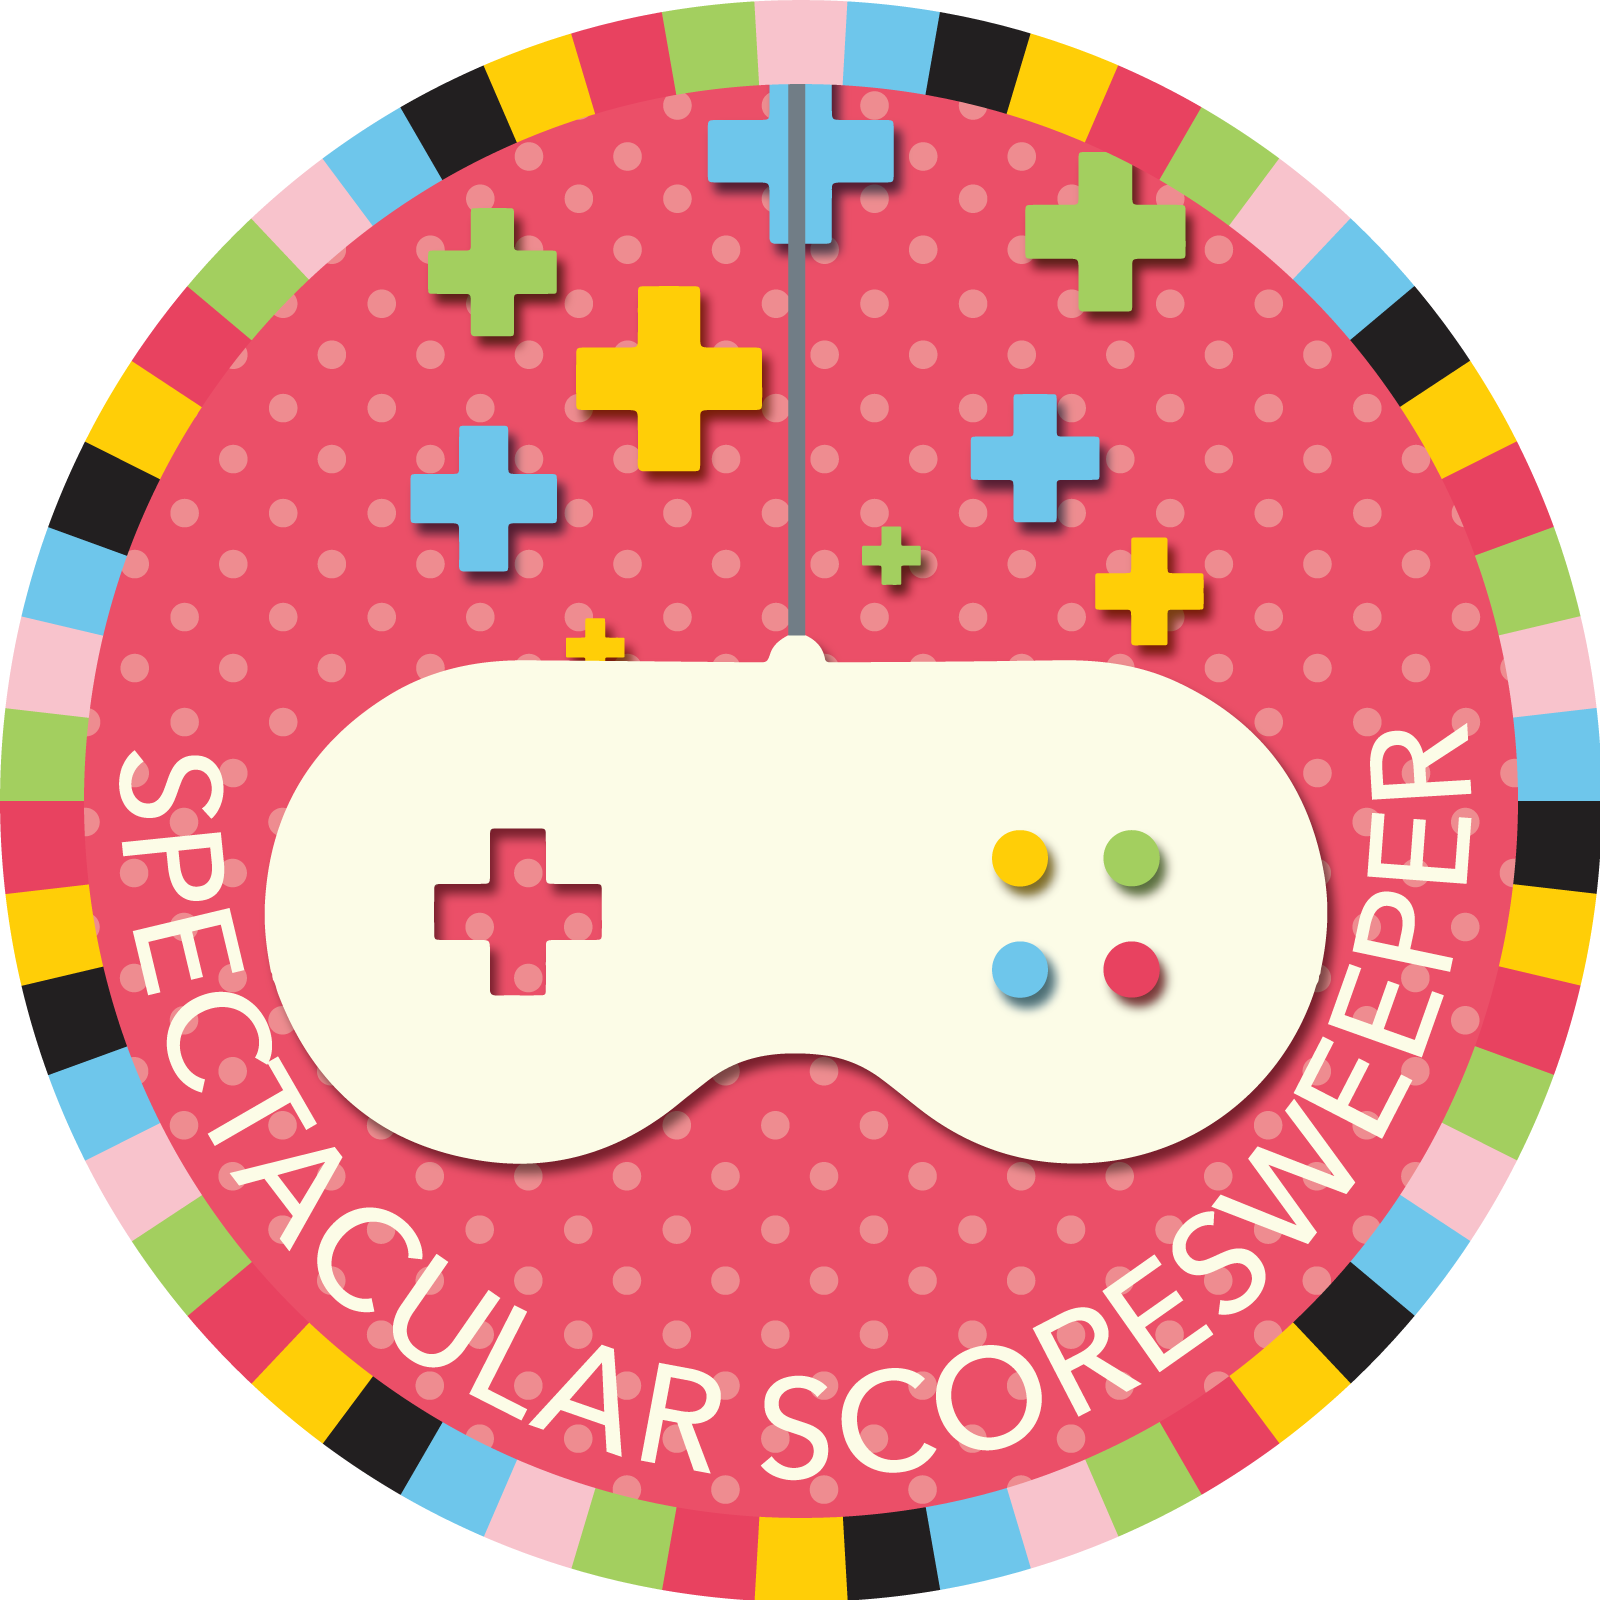 Summer Game Scoresweeper badge image